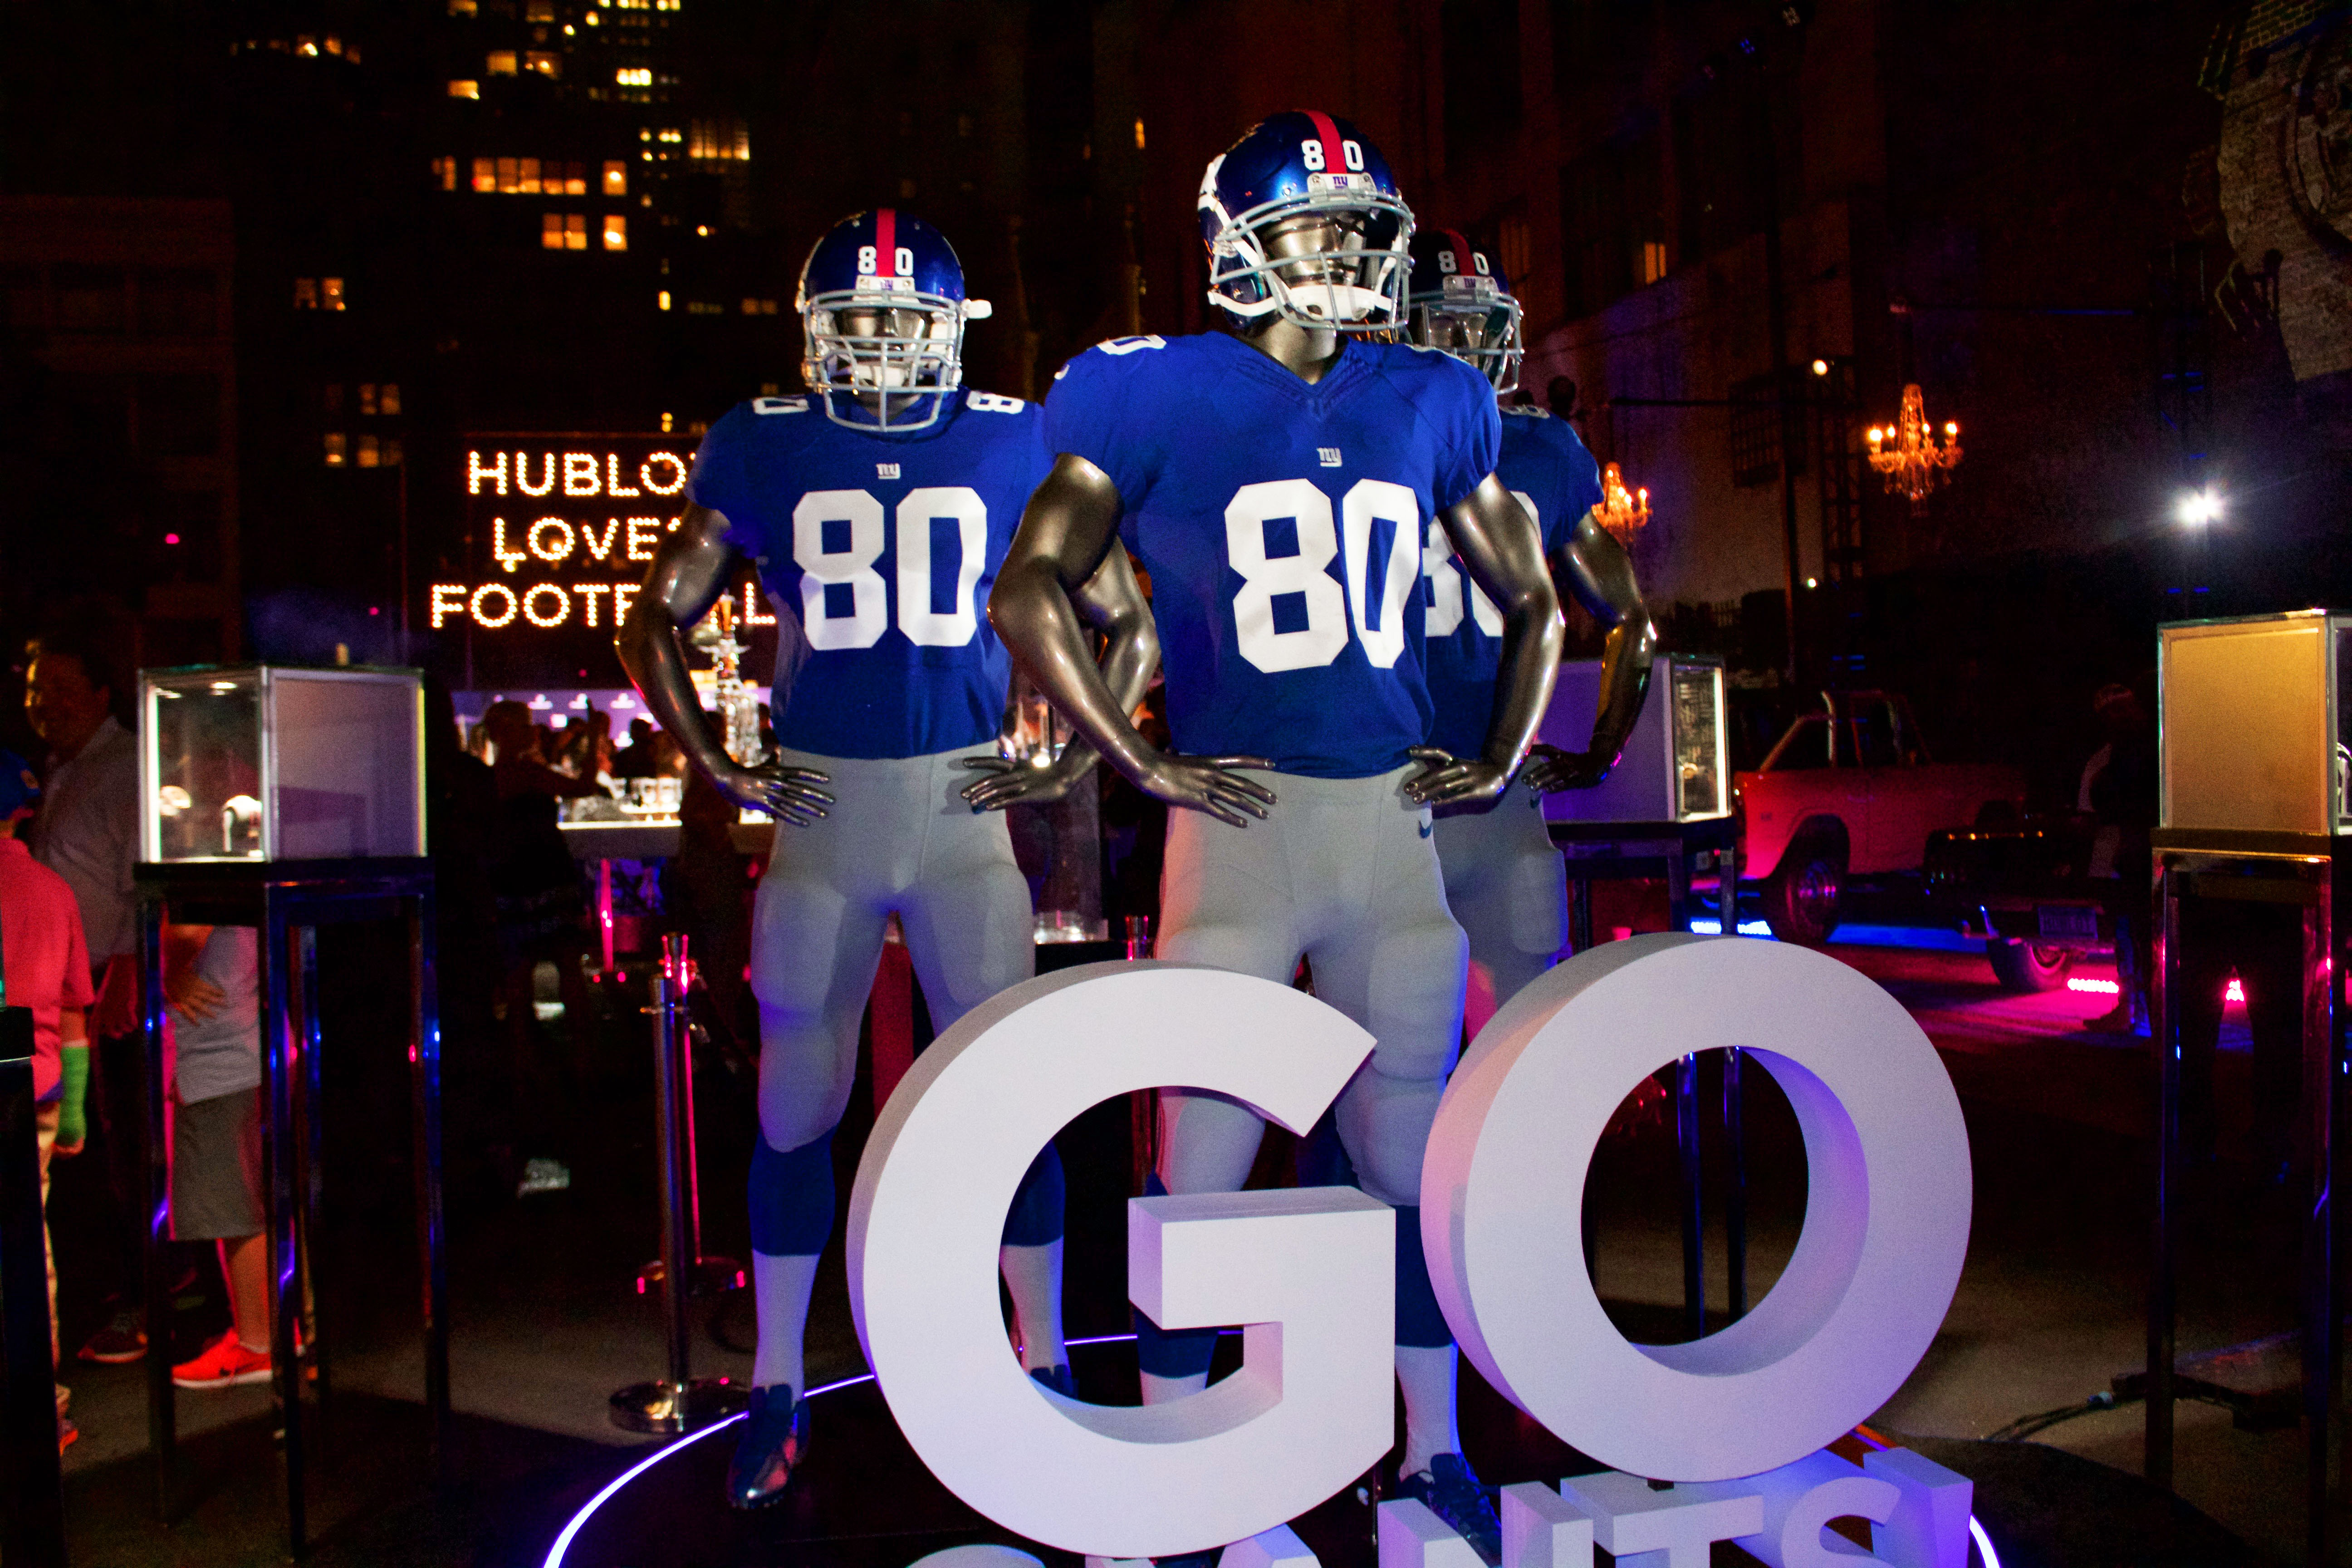 Hublot Watches x New York Giants - Rise & Set Agency